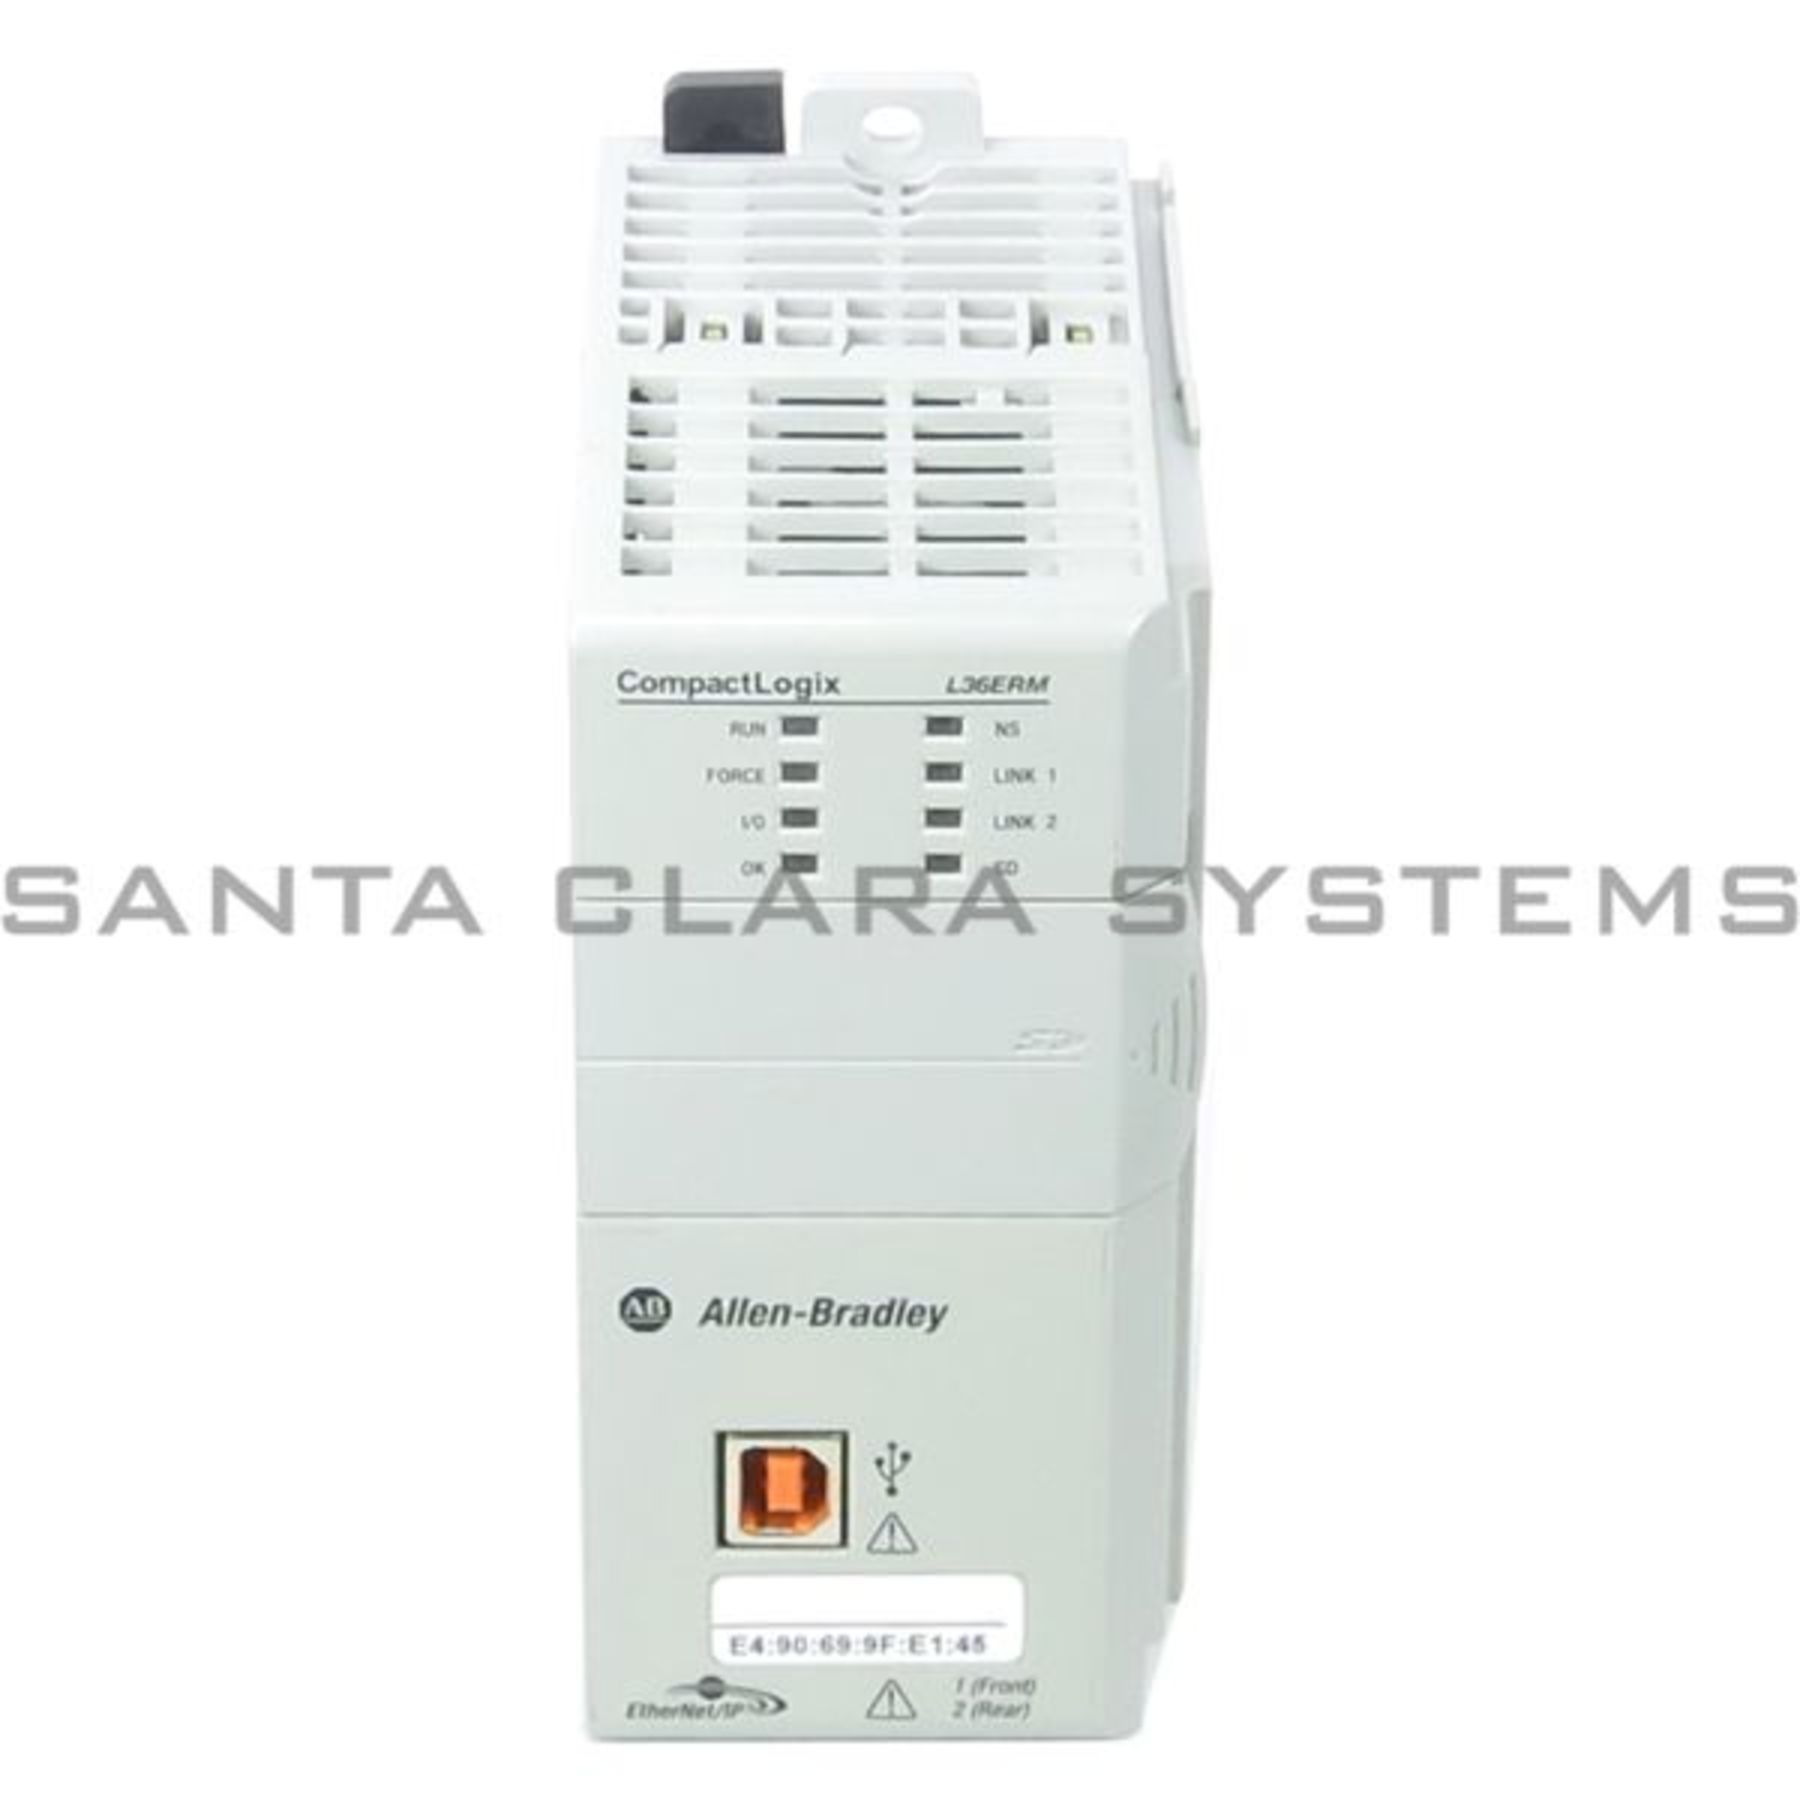 1769-L36ERM Allen Bradley In stock and ready to ship - Santa